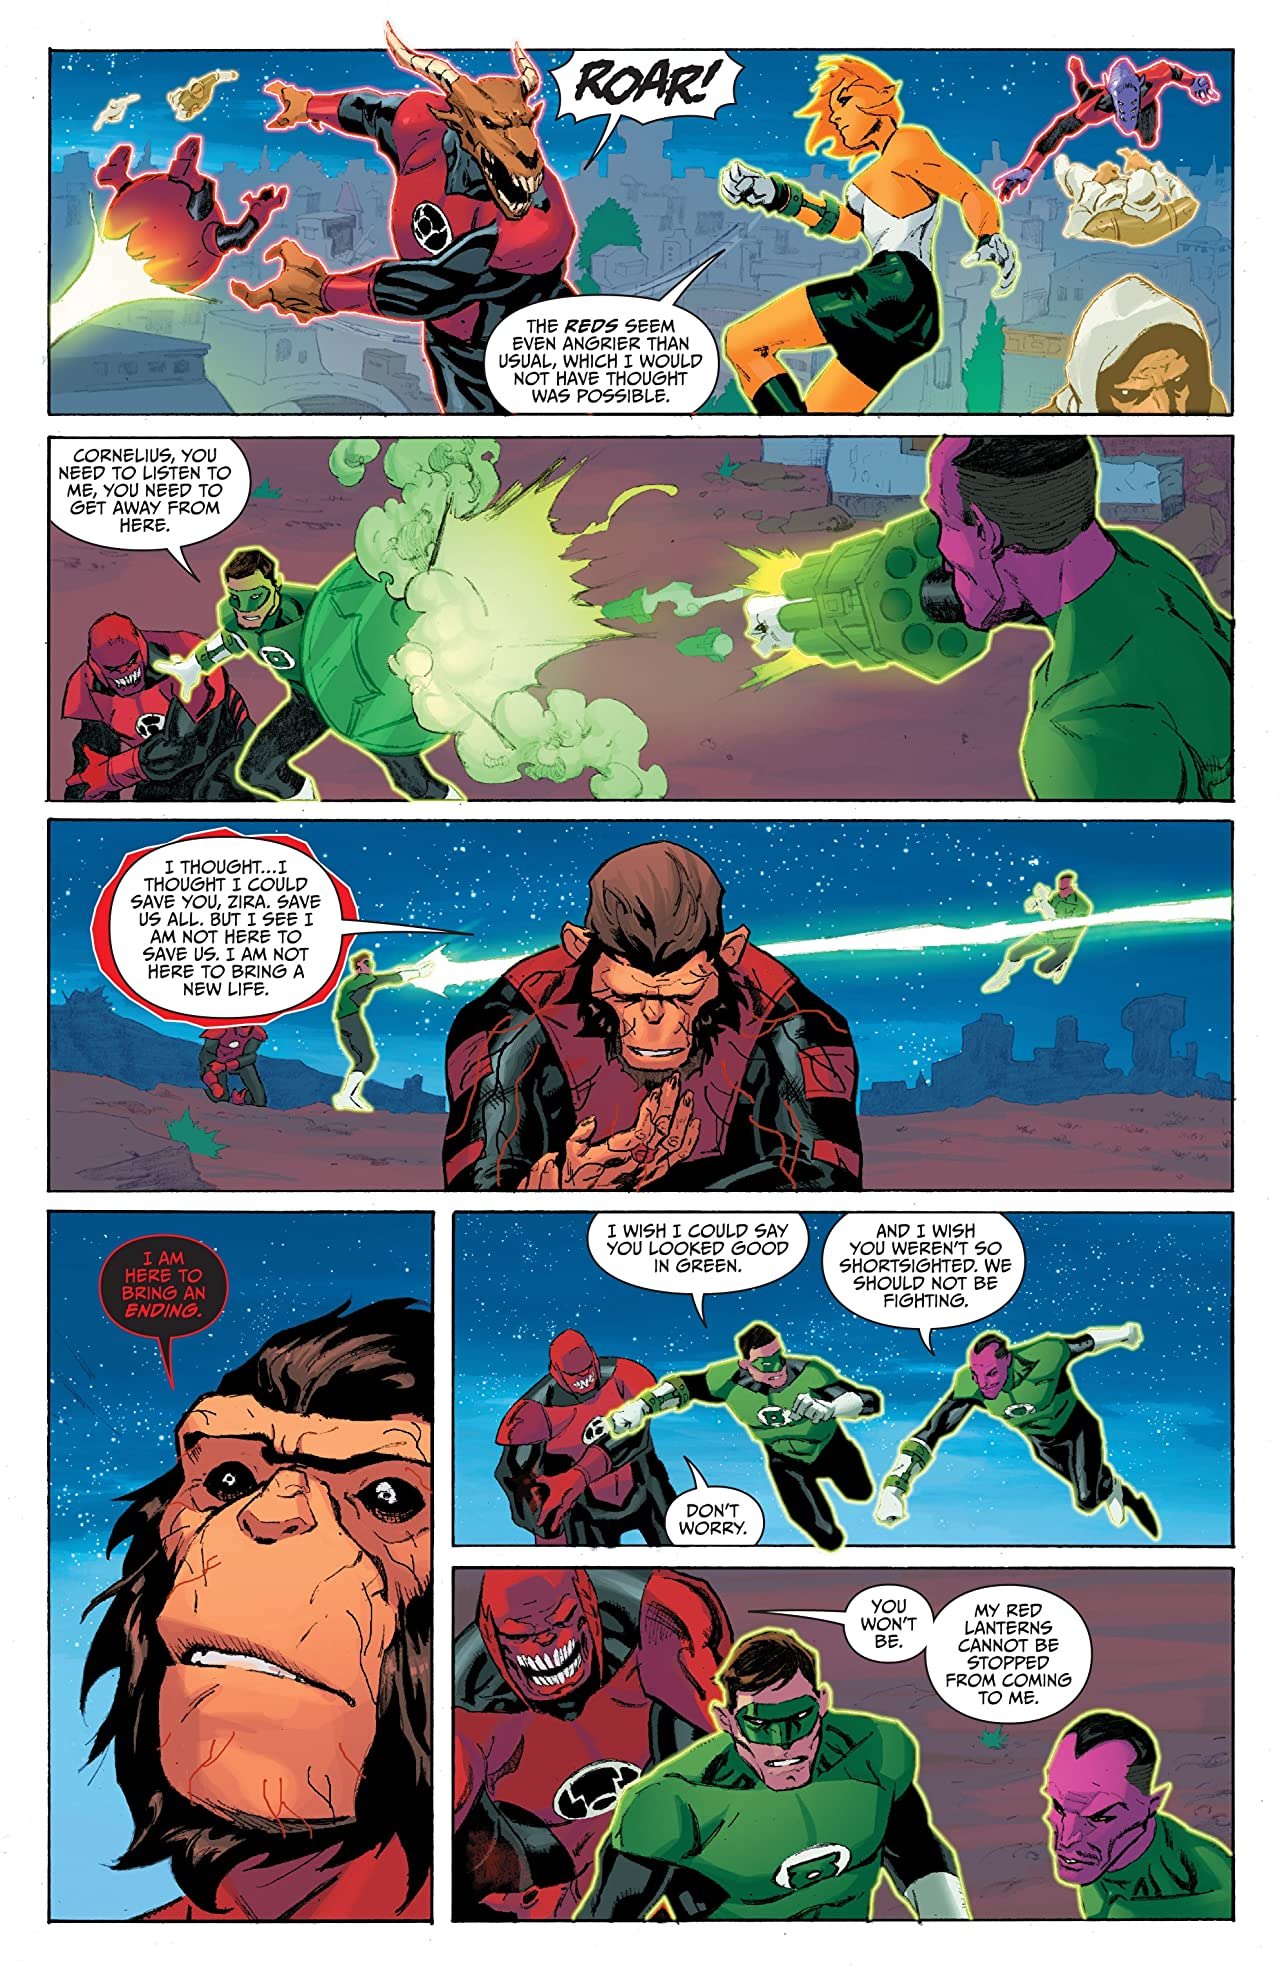 Planet of the Apes/Green Lantern #6 (of 6)